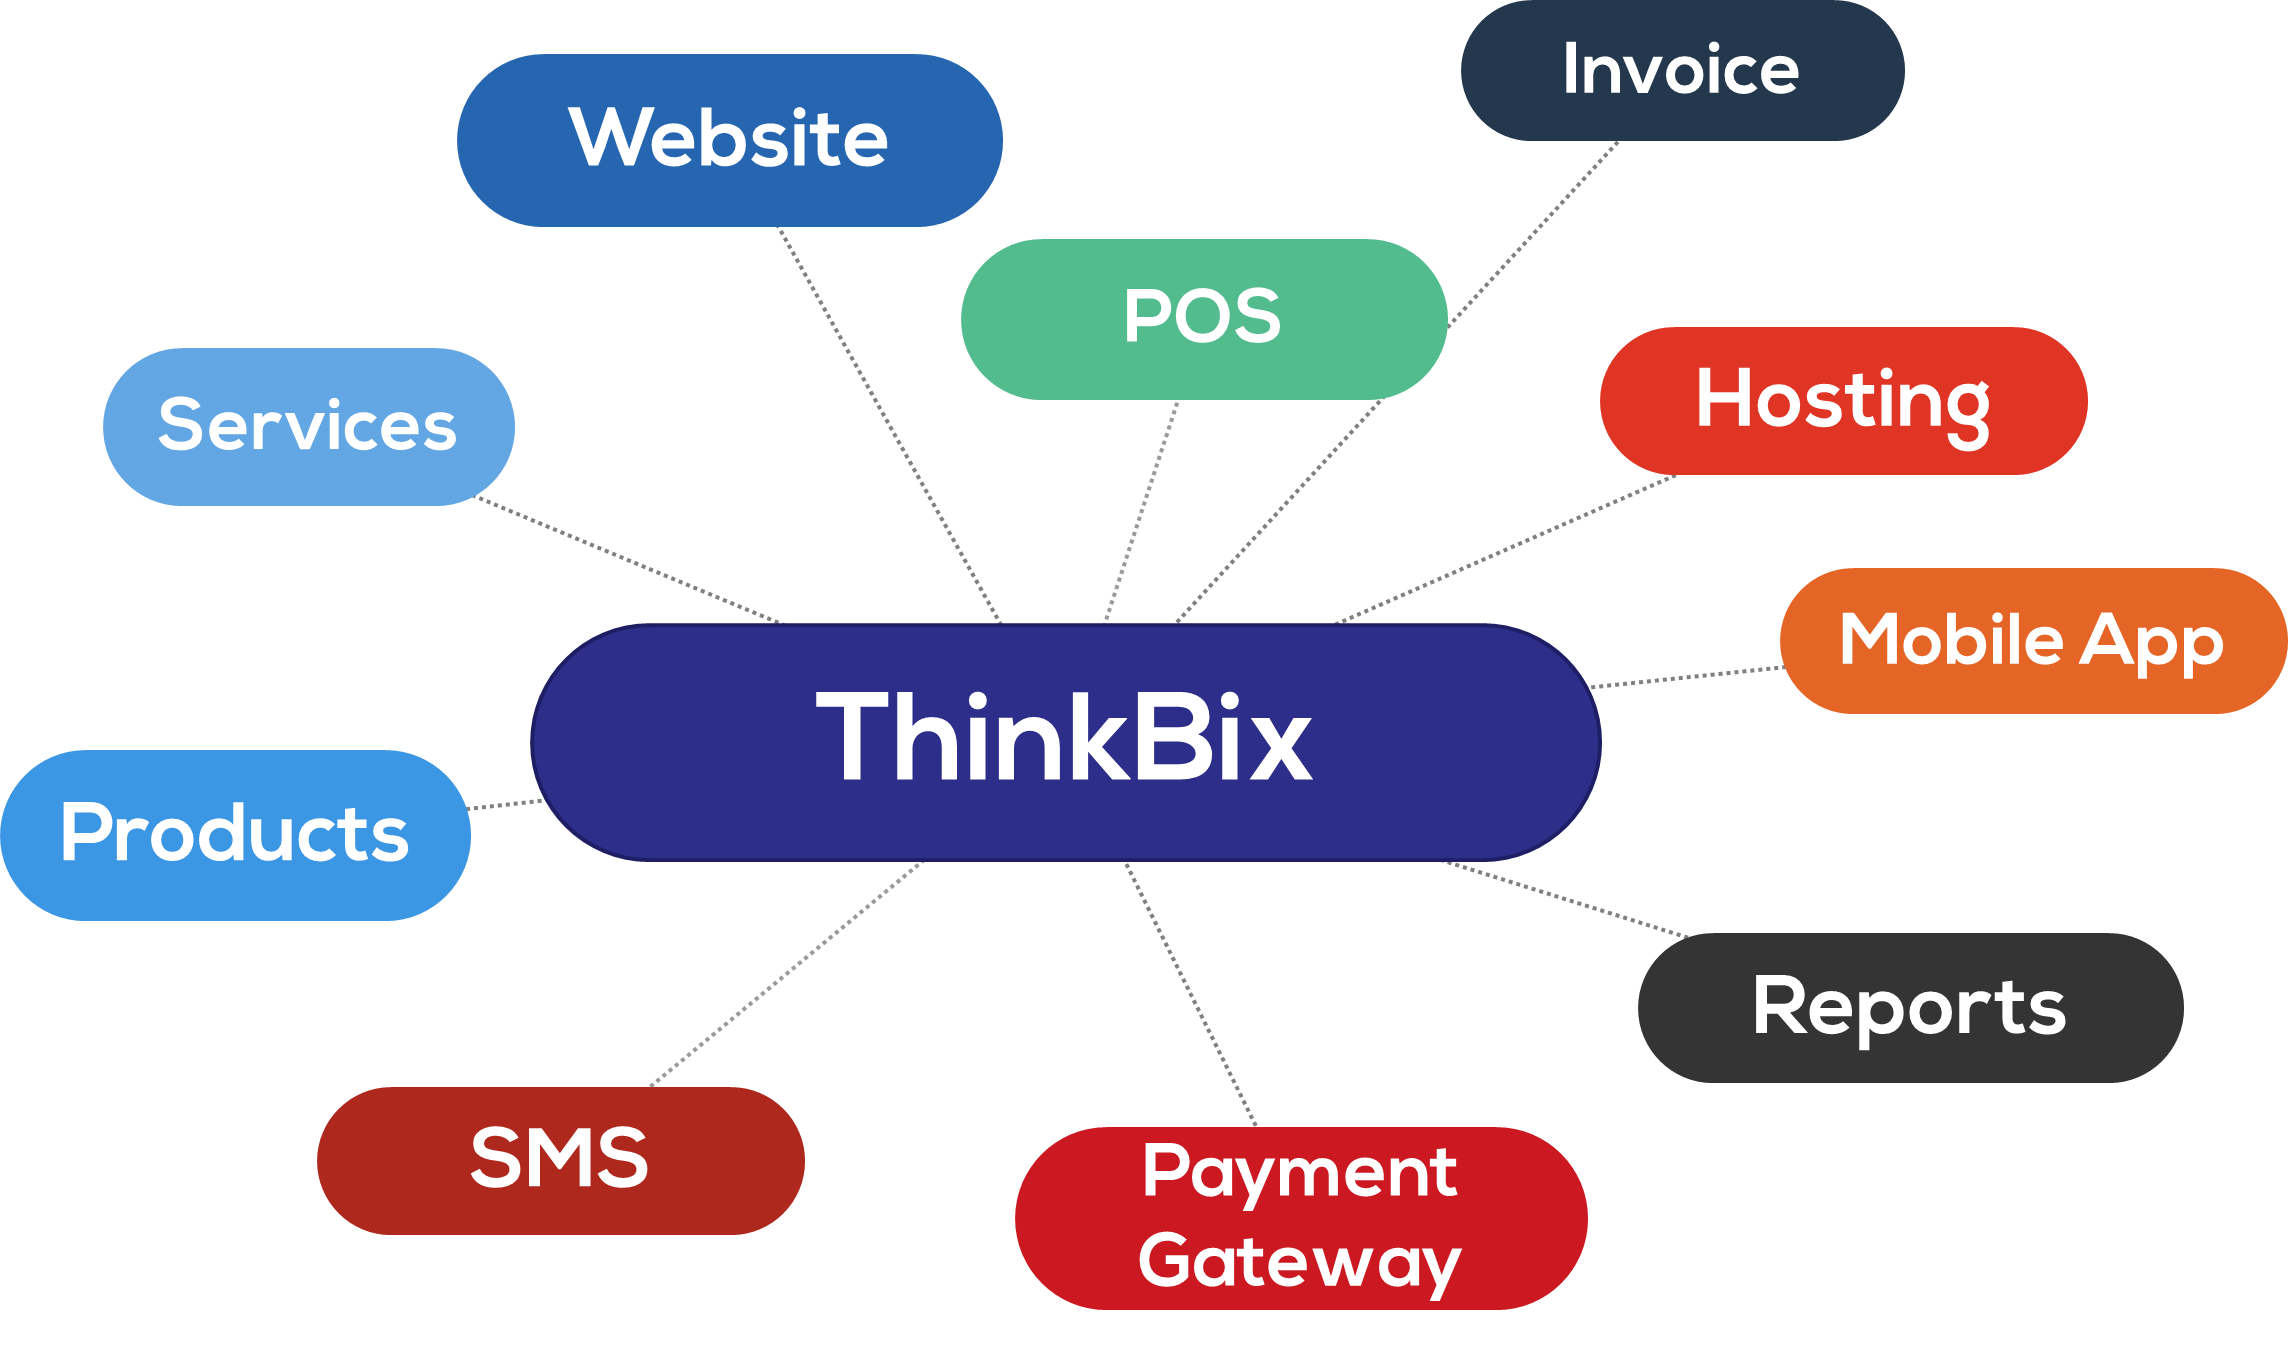 Why ThinkBix SaaS Services For e-commerce Websites